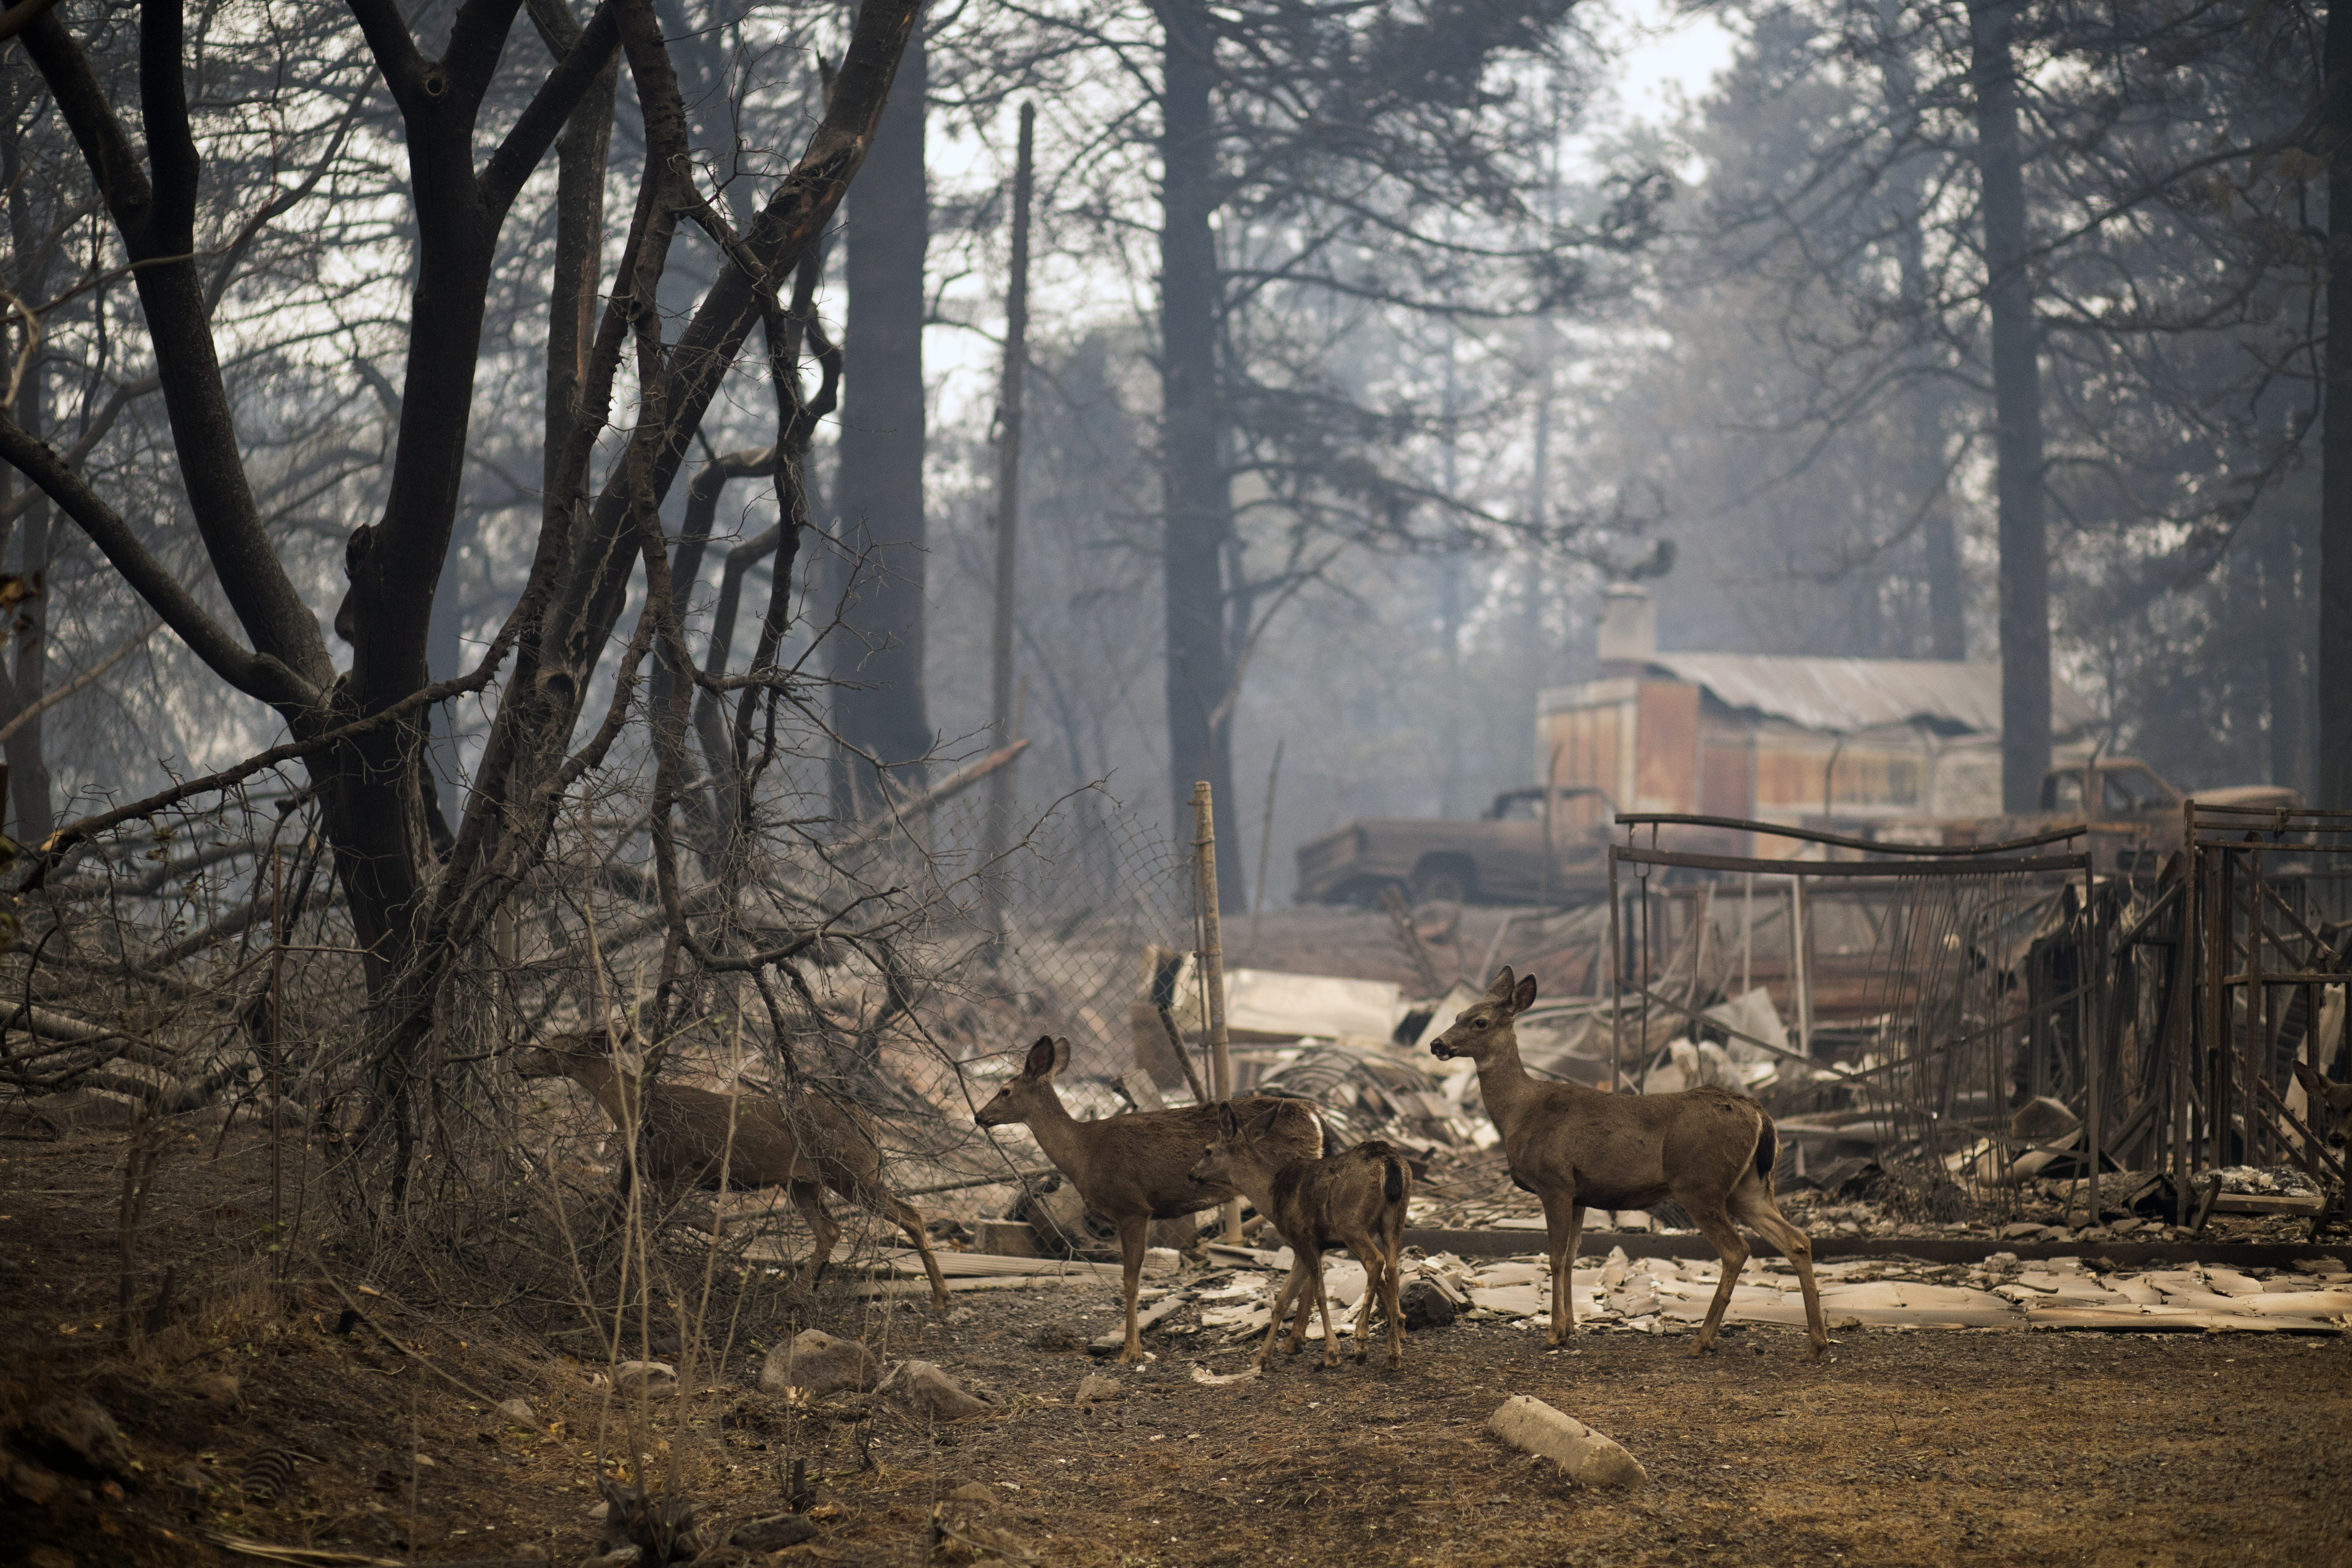 As wildfires get worse, insurers pull back from riskiest areas